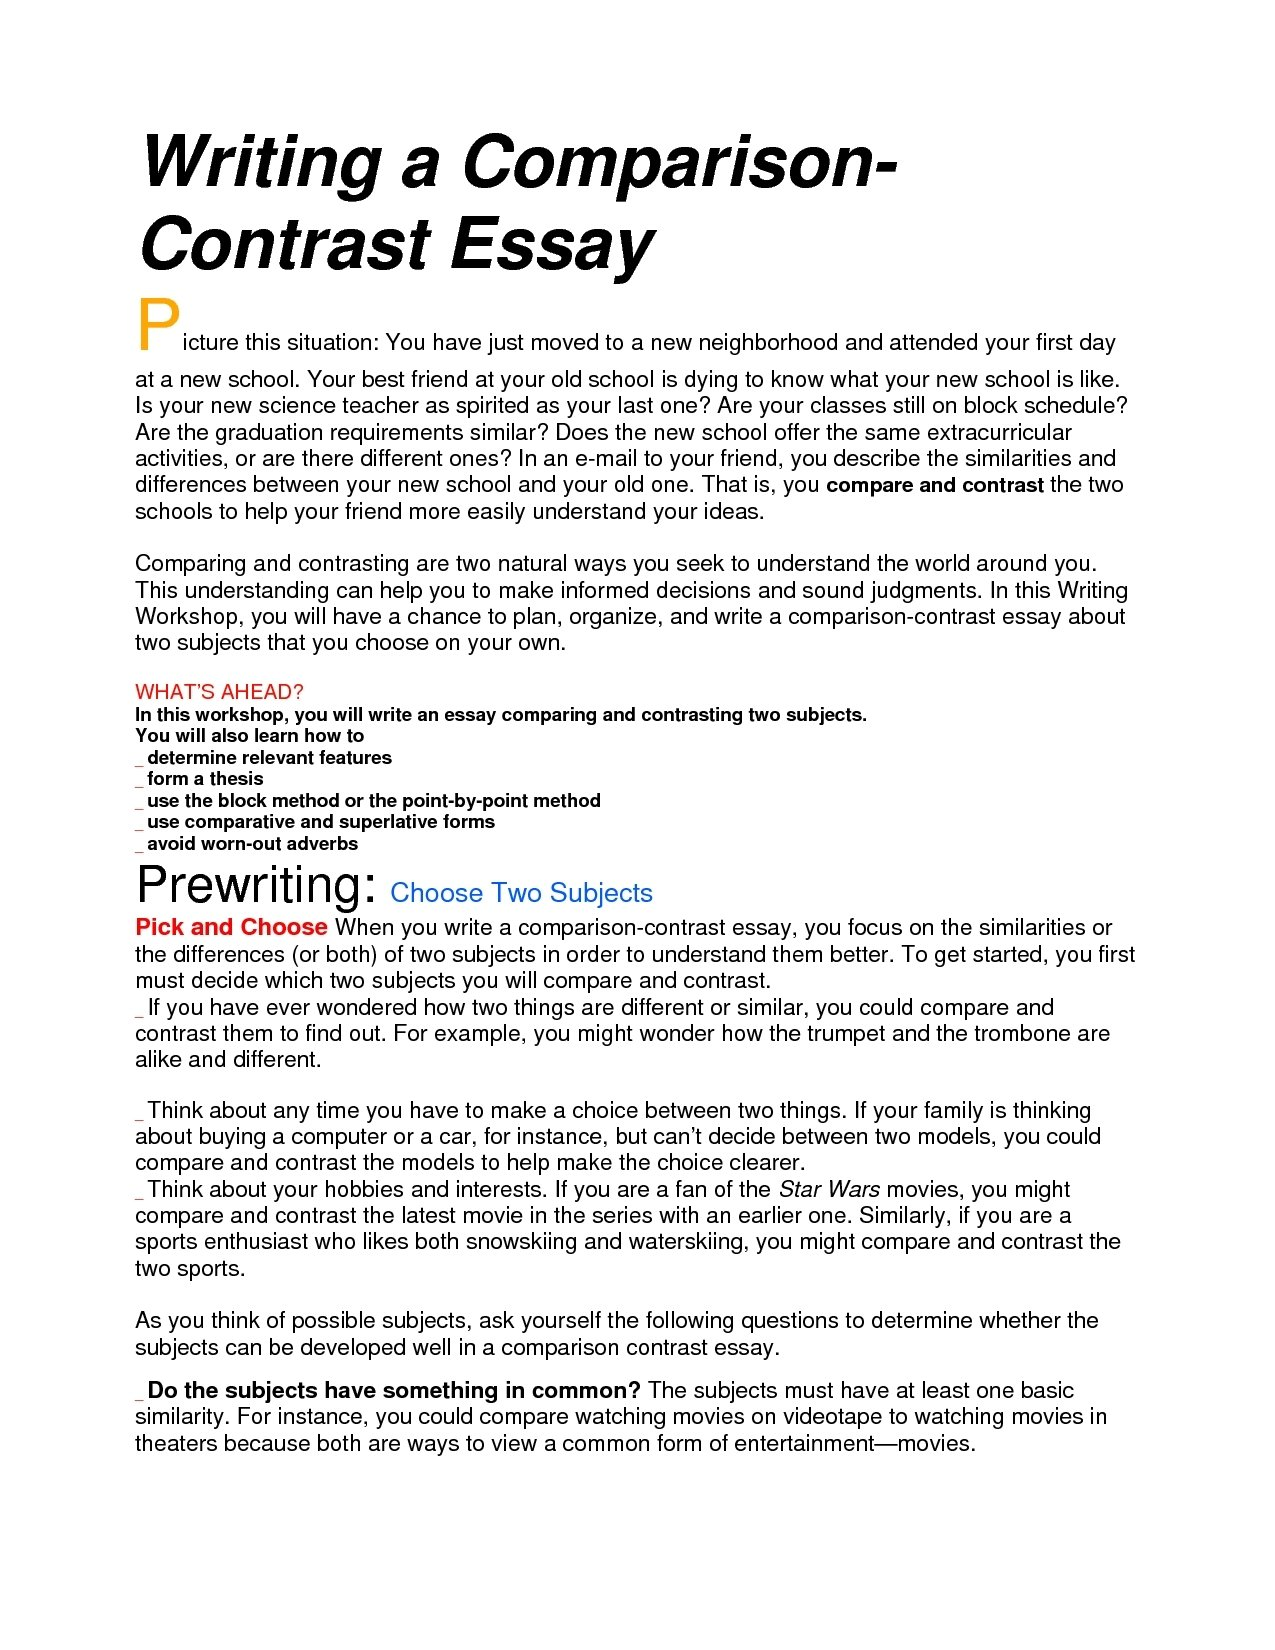 10 Amazing Ideas For Compare And Contrast Essays great compare and contrast essay topics to choose from mgicorp ca 2020